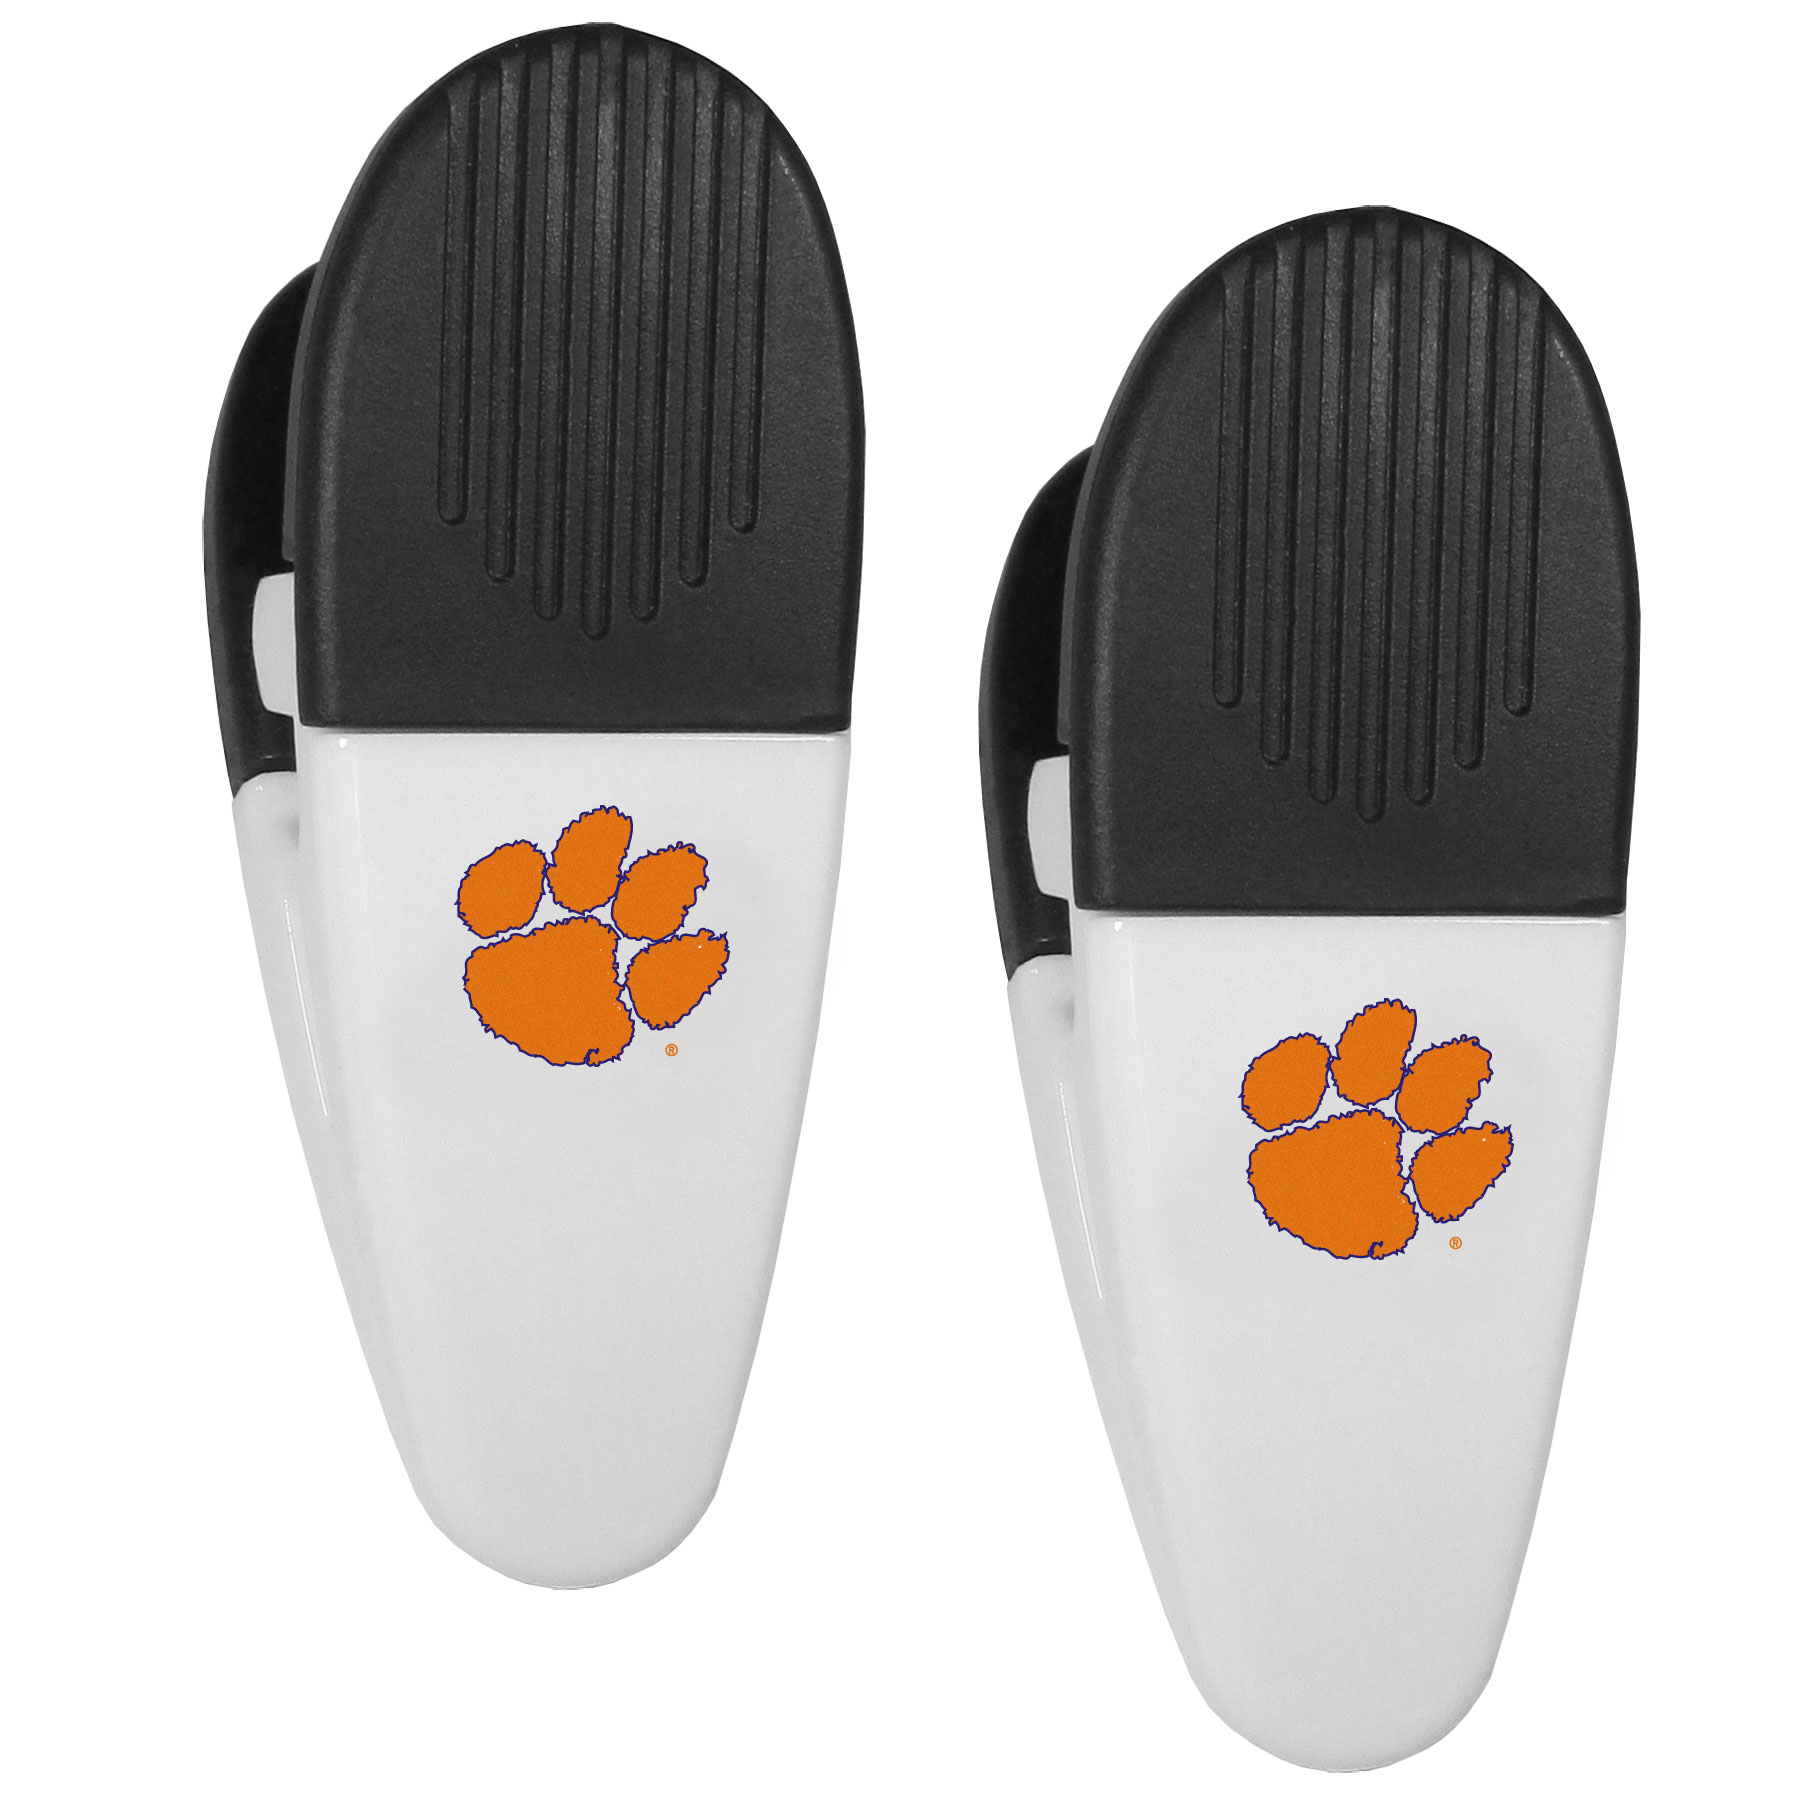 Clemson Tigers Mini Chip Clip Magnets, 2 pk - Our Clemson Tigers chip clip magnets feature a crisp team logo on the front of the clip. The clip is perfect for sealing chips for freshness and with the powerful magnet on the back it can be used to attach notes to the fridge or hanging your child's artwork. Set of 2 magnet clips, each clip is 3.5 inches tall and 1.25 inch wide.